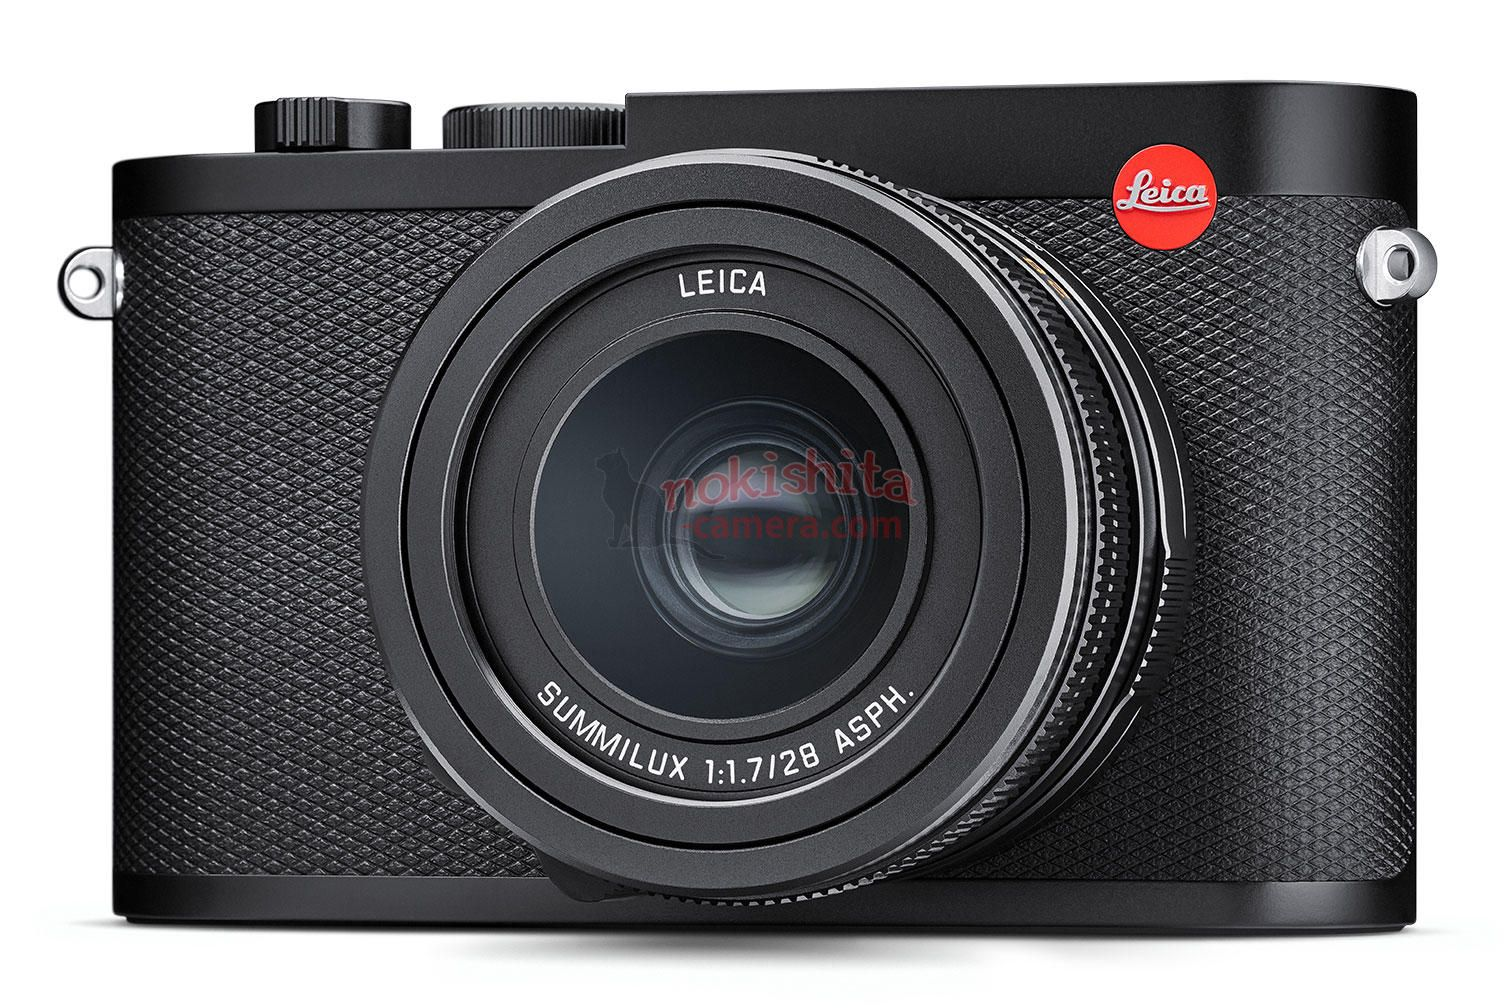 Here's the Leica Q2